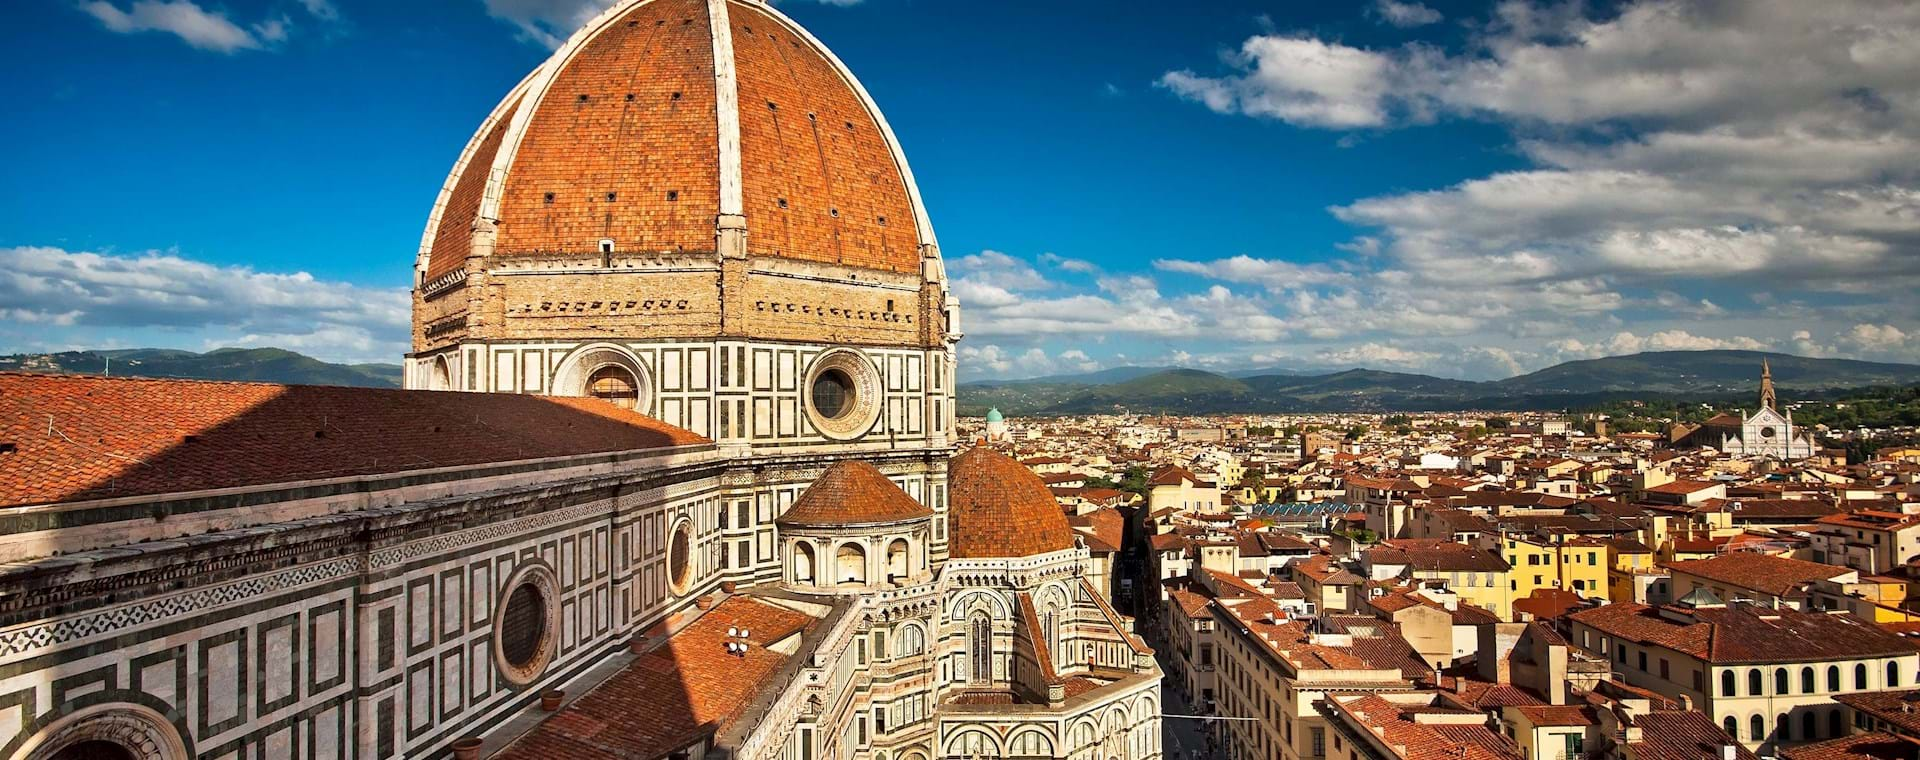 Best of Florence Tour with David & the Duomo